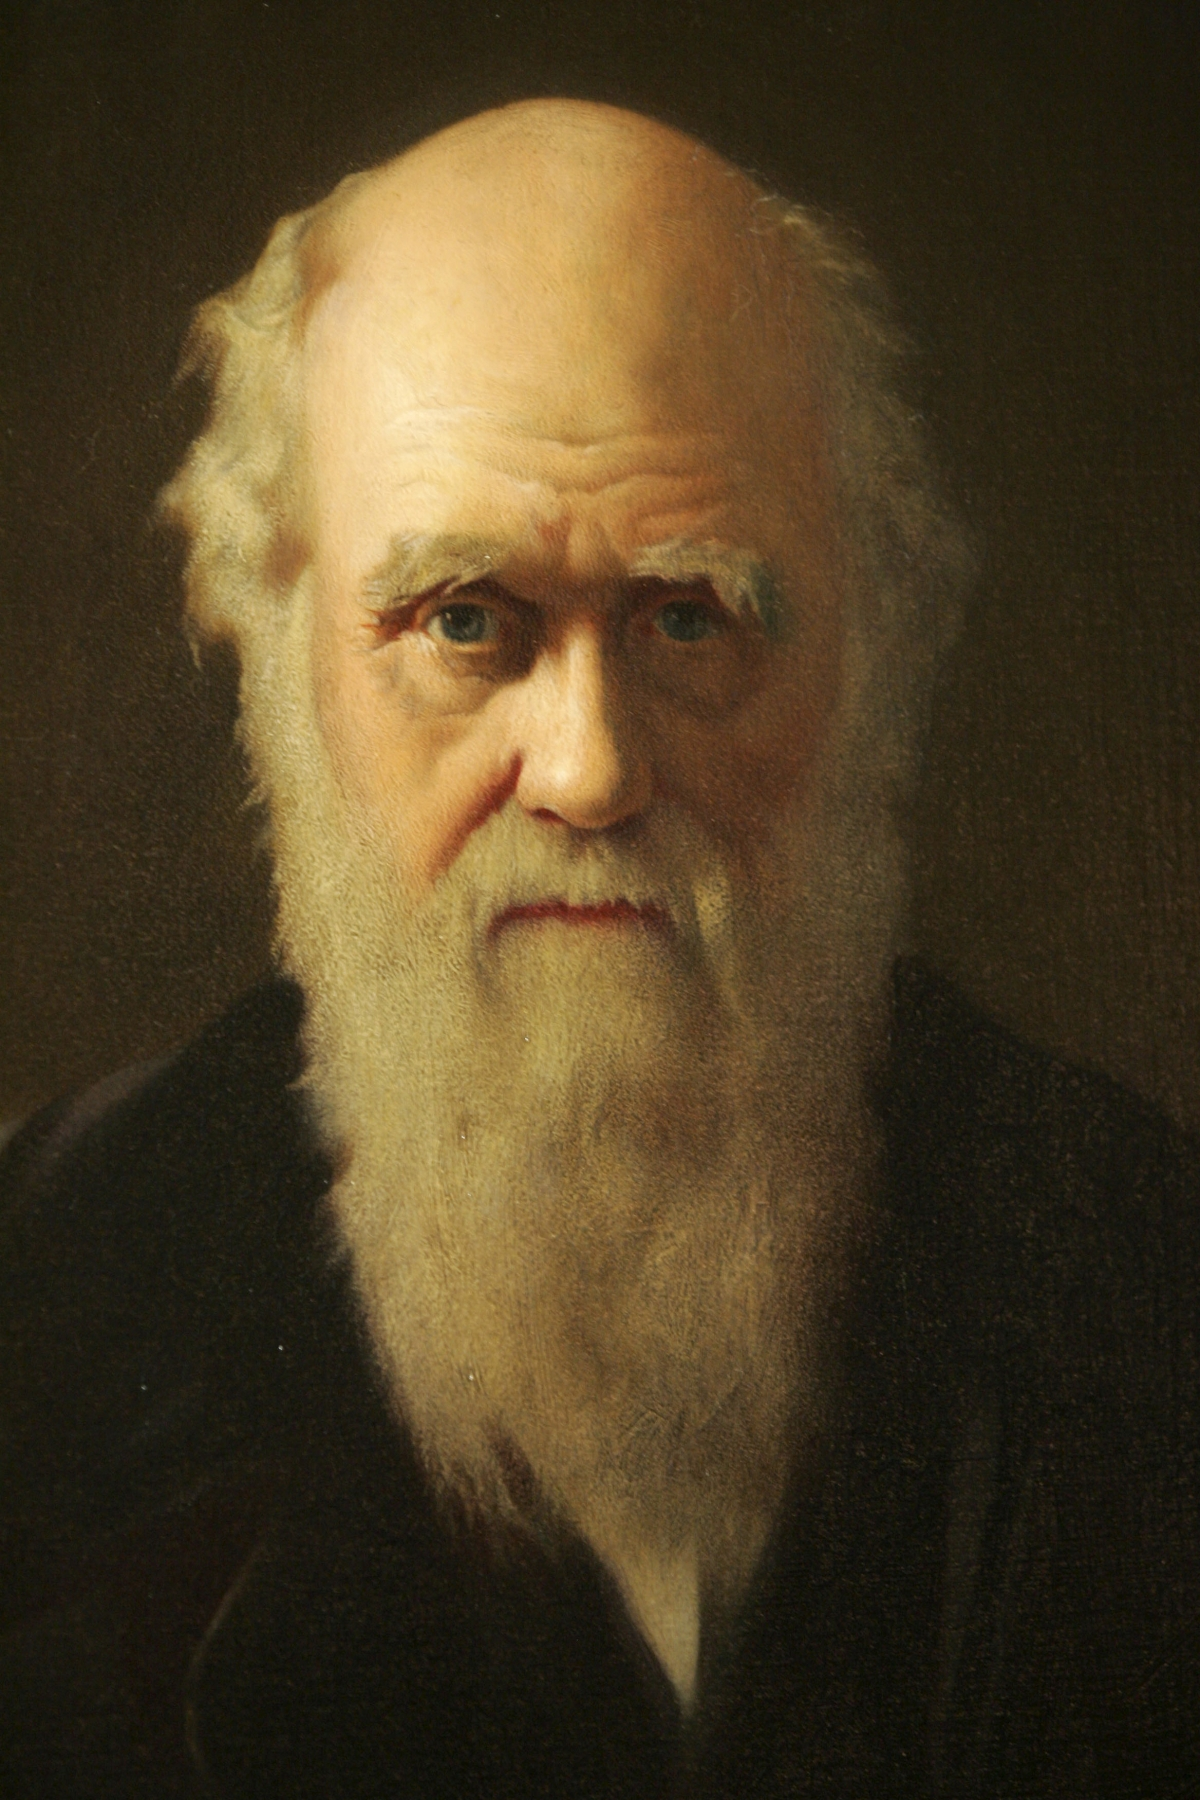 an analysis of mans belief in god in the theory of evolution by charles darwin Charles darwin himself hated religious controversy  to present his theory of  evolution as an idea that was compatible with belief in god  the work of this  great man of science, farrar said, had enabled people to read 'many hitherto   as opposed to non-denominational, interpretation of the first amendment, and to  apply.